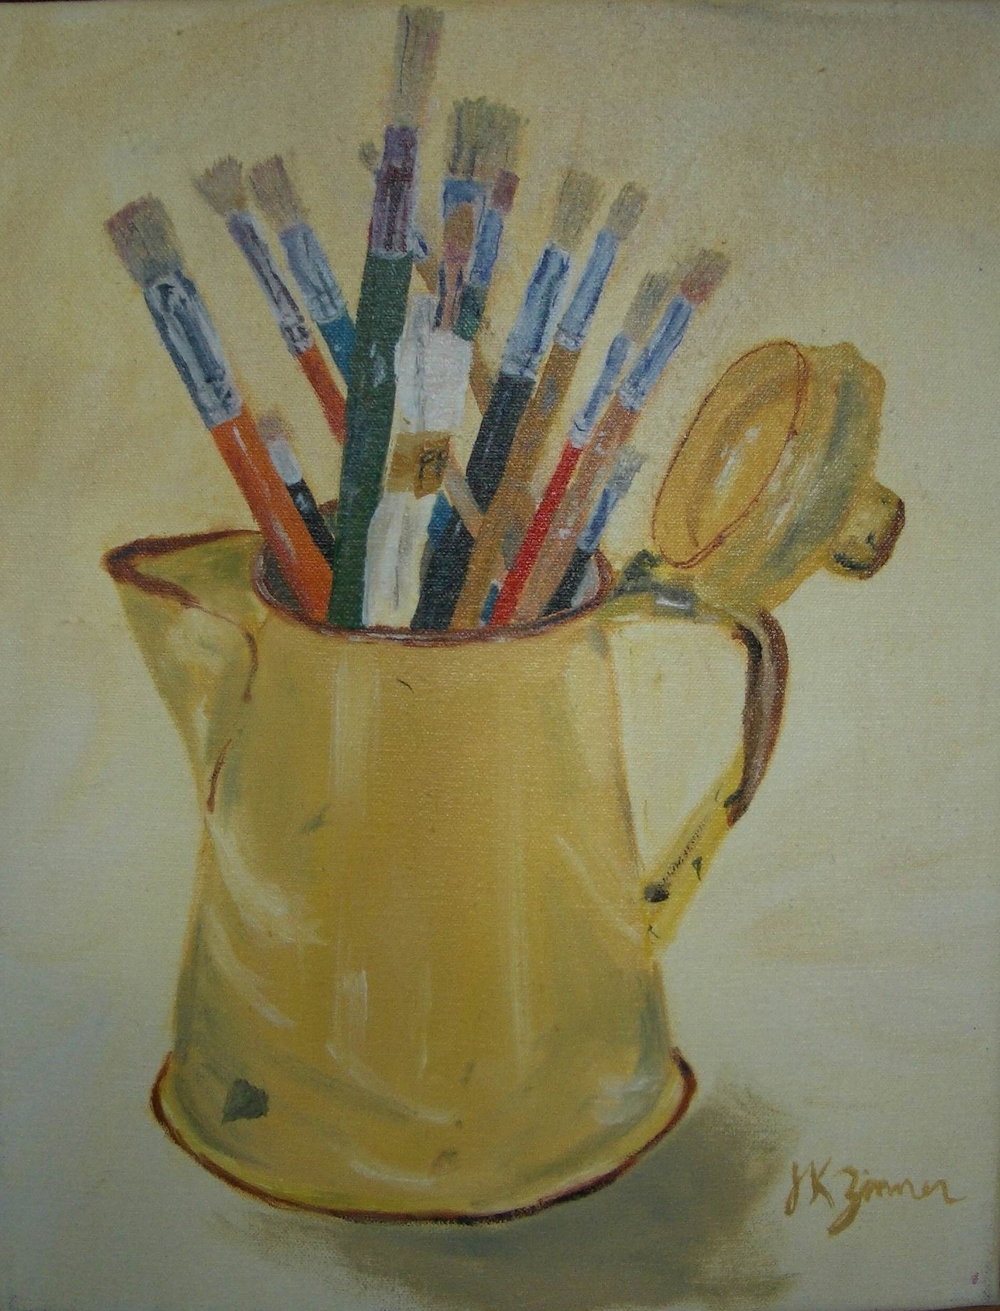 Pitcher with Brushes - 11x14